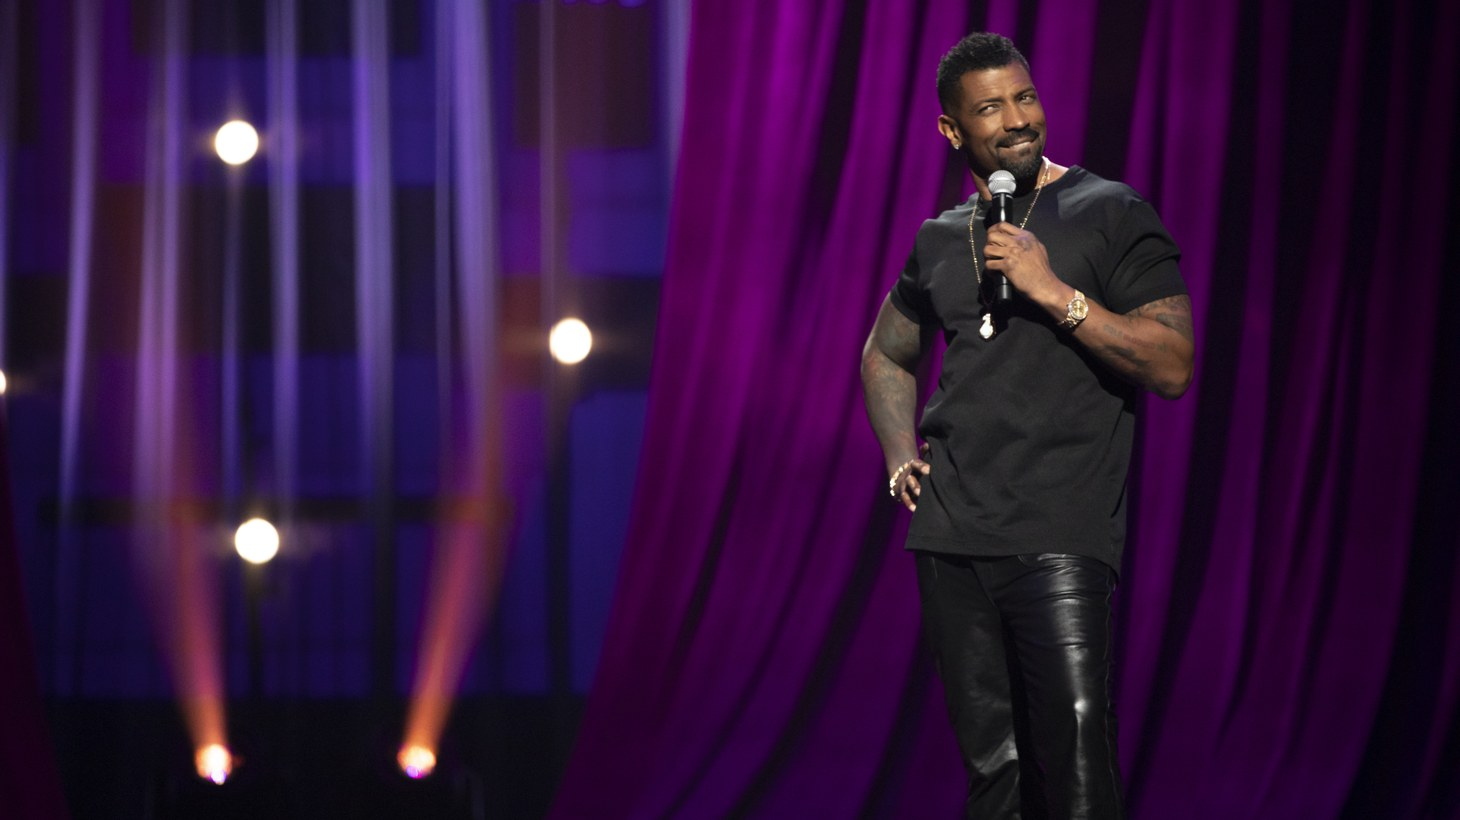 Deon Cole jokes about dining, strangers, and more on his Netflix comedy special.